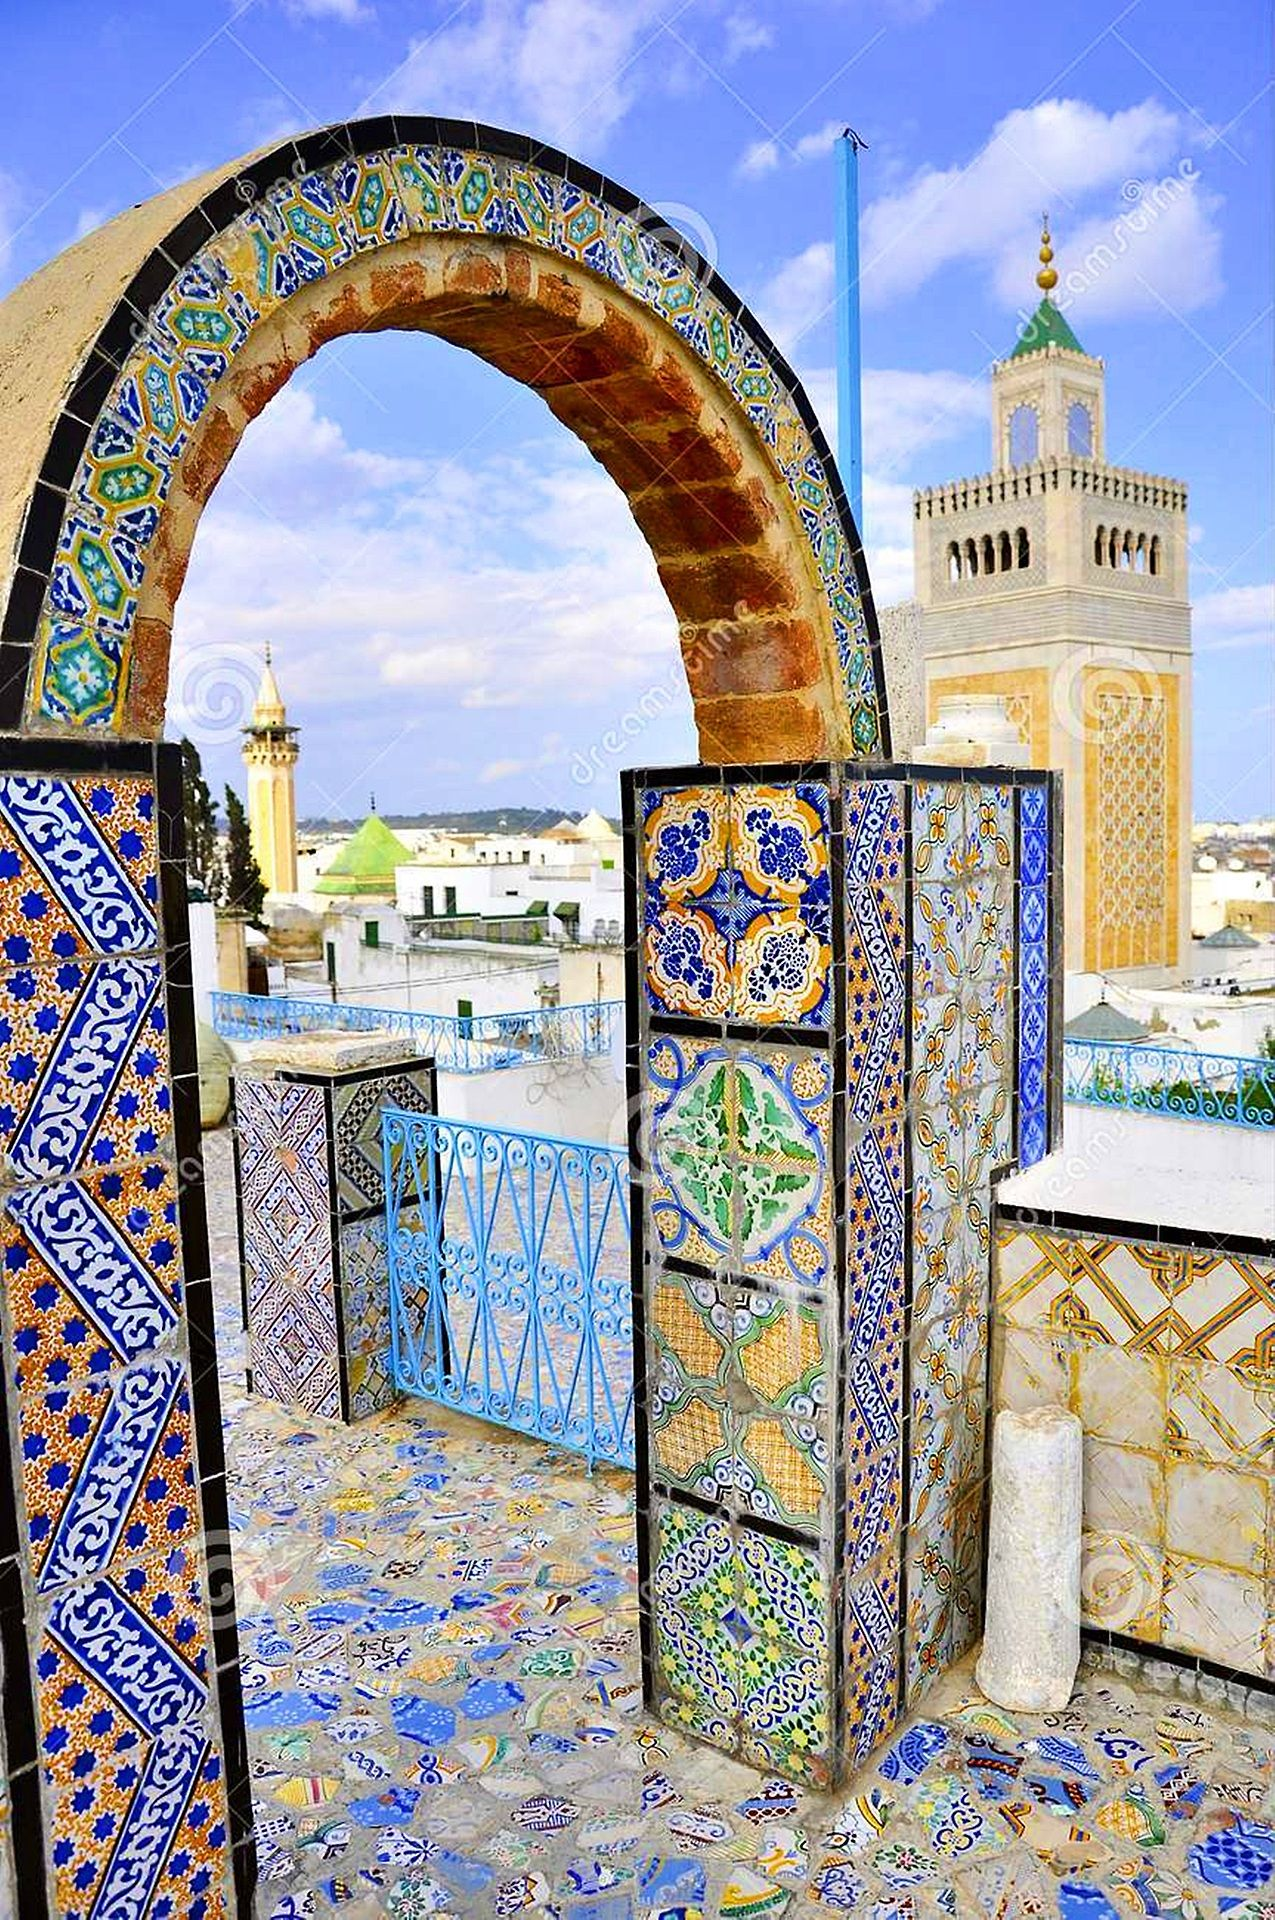 Welcome To The Maghreb Tunis Tunisia Tunisia Africa Africa Destinations Tunis